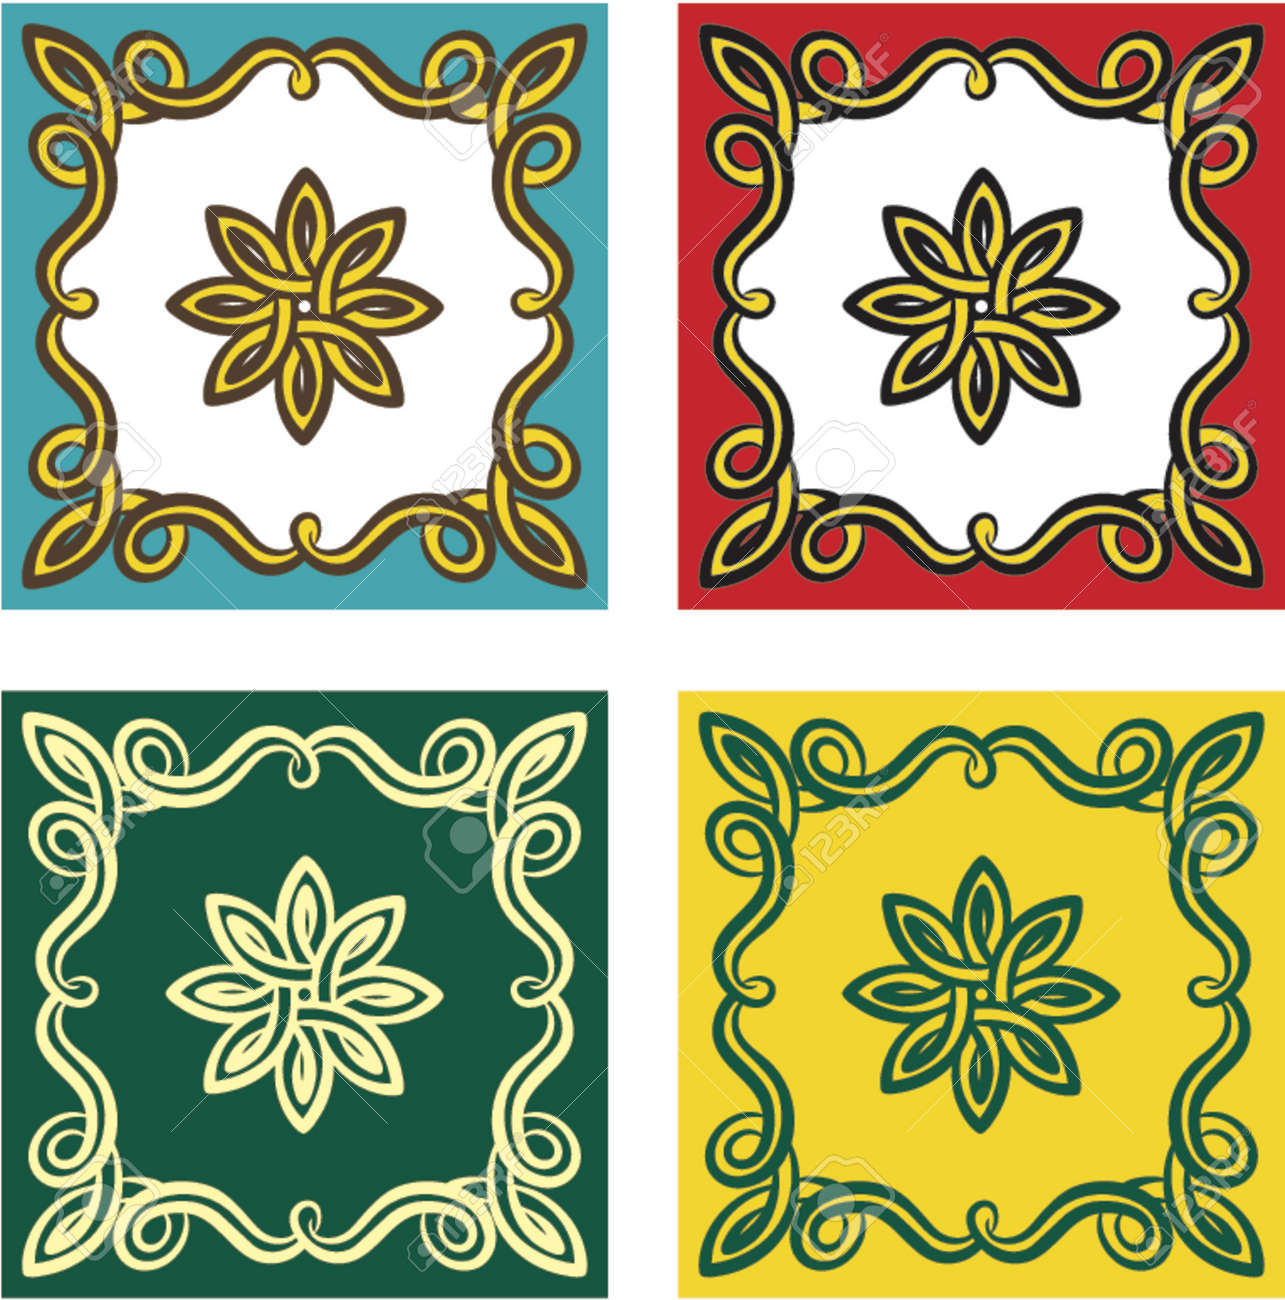 Vector decorative design elements. This is a vector image - you can simply edit colors and shapes. Stock Vector - 548988